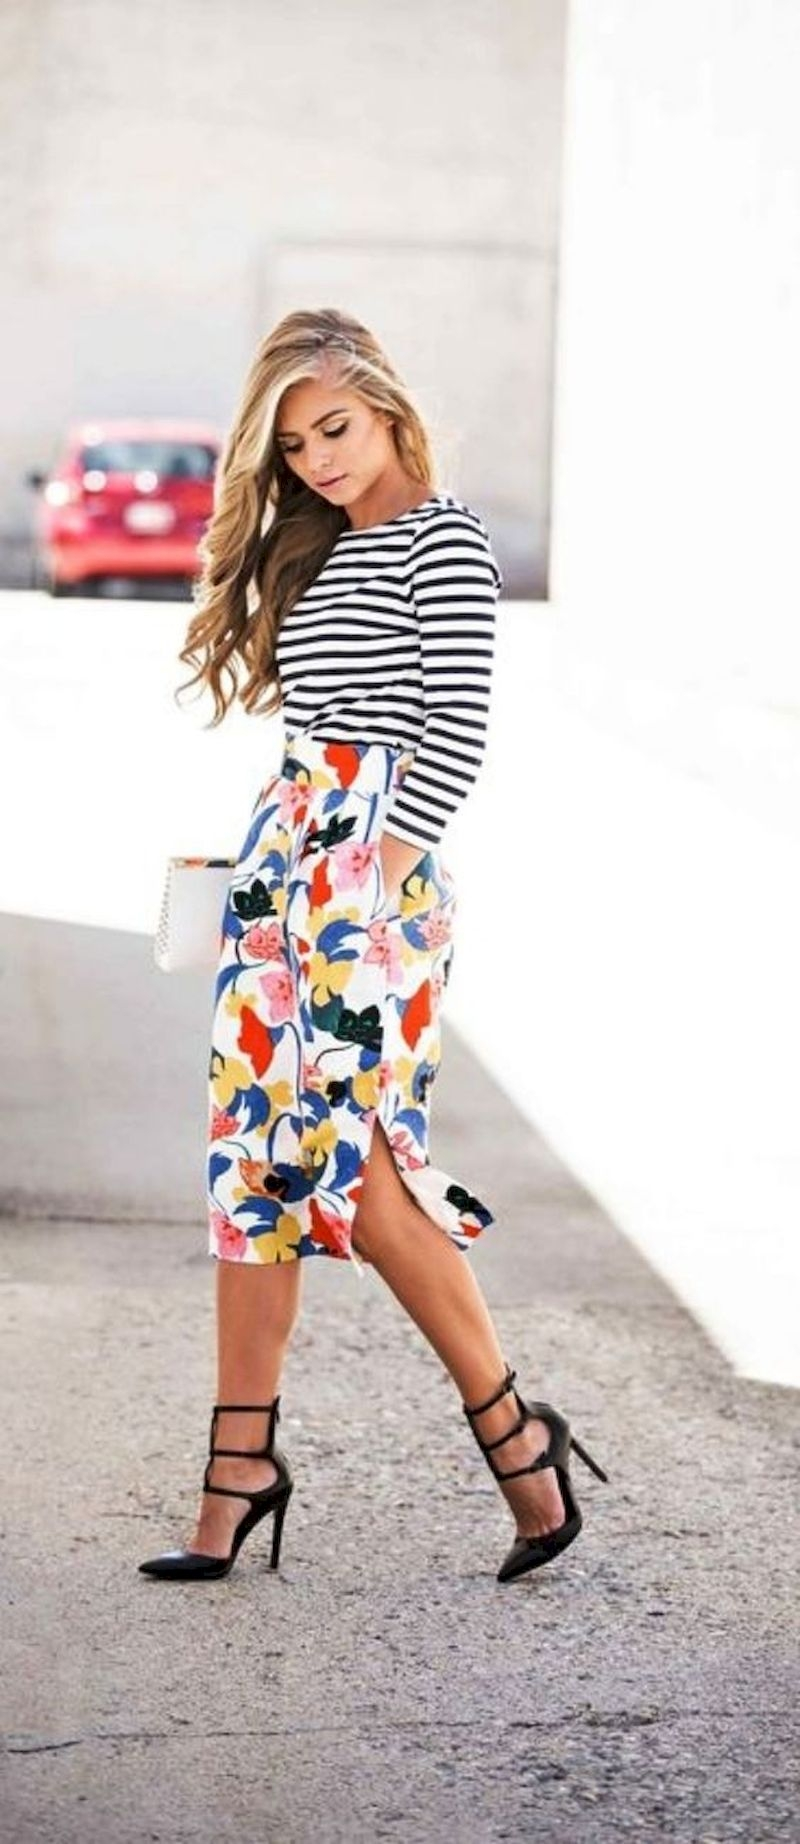 Spring outfit inspiration with floral skirt and striped t-shirt